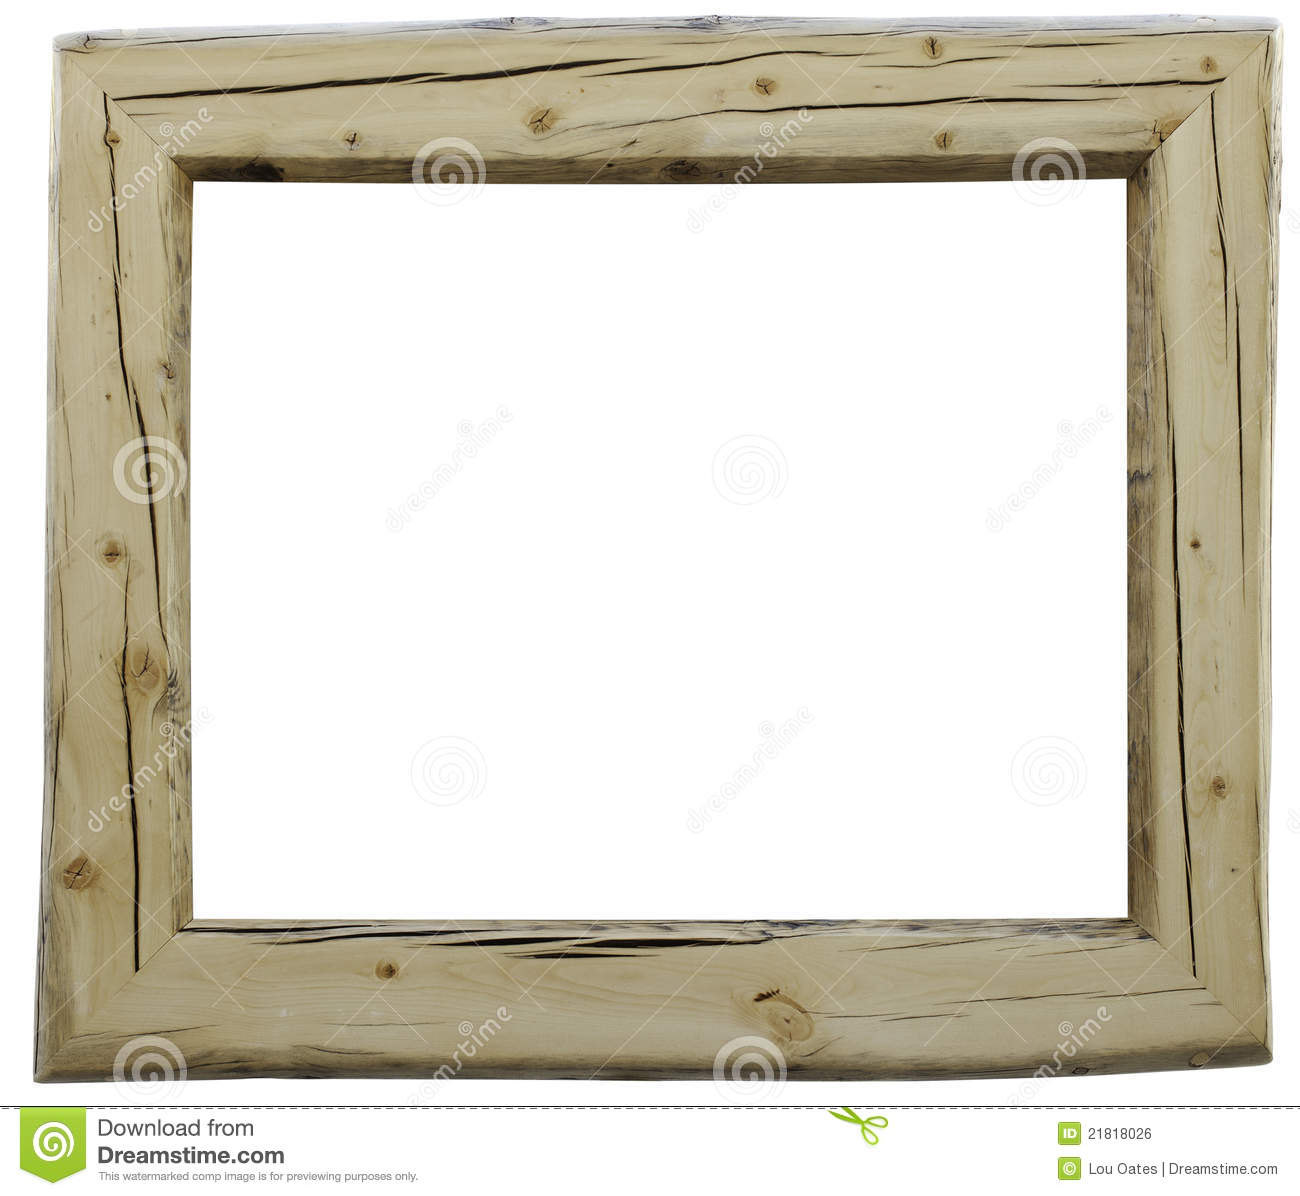 Rustic wood frame stock photo. Image of fashioned, isolated - 21818026